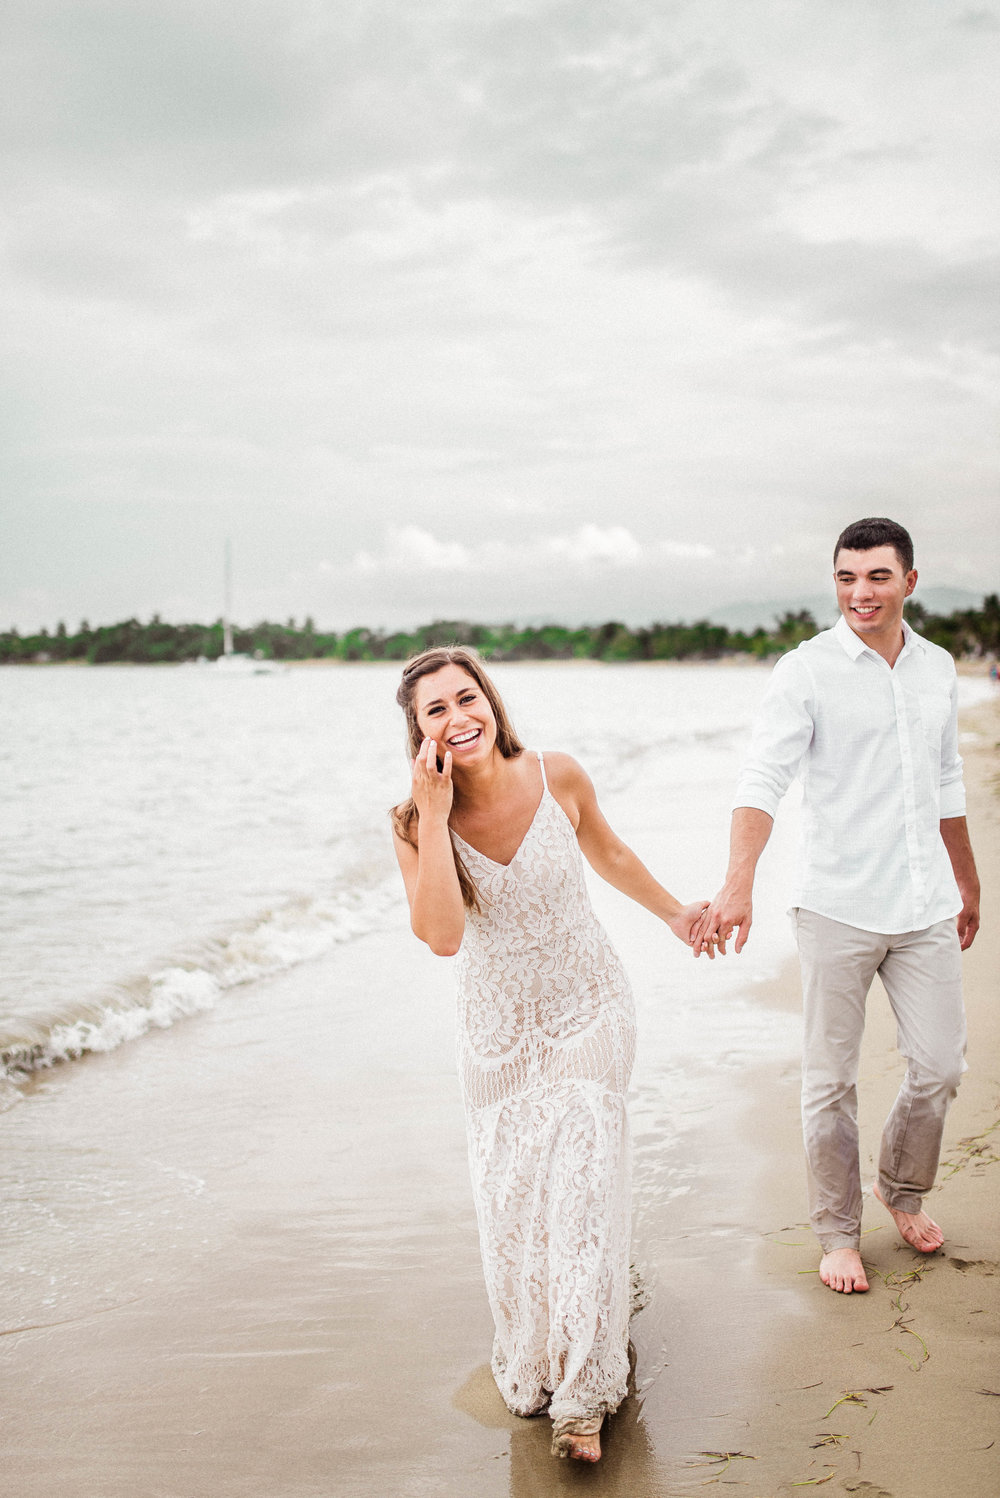 Michaella + Javi | Excited and Romantic International Honeymoon Beach Photography Session in Puerto Plata, Dominican Republic | Indianapolis Destination Wedding Photographers